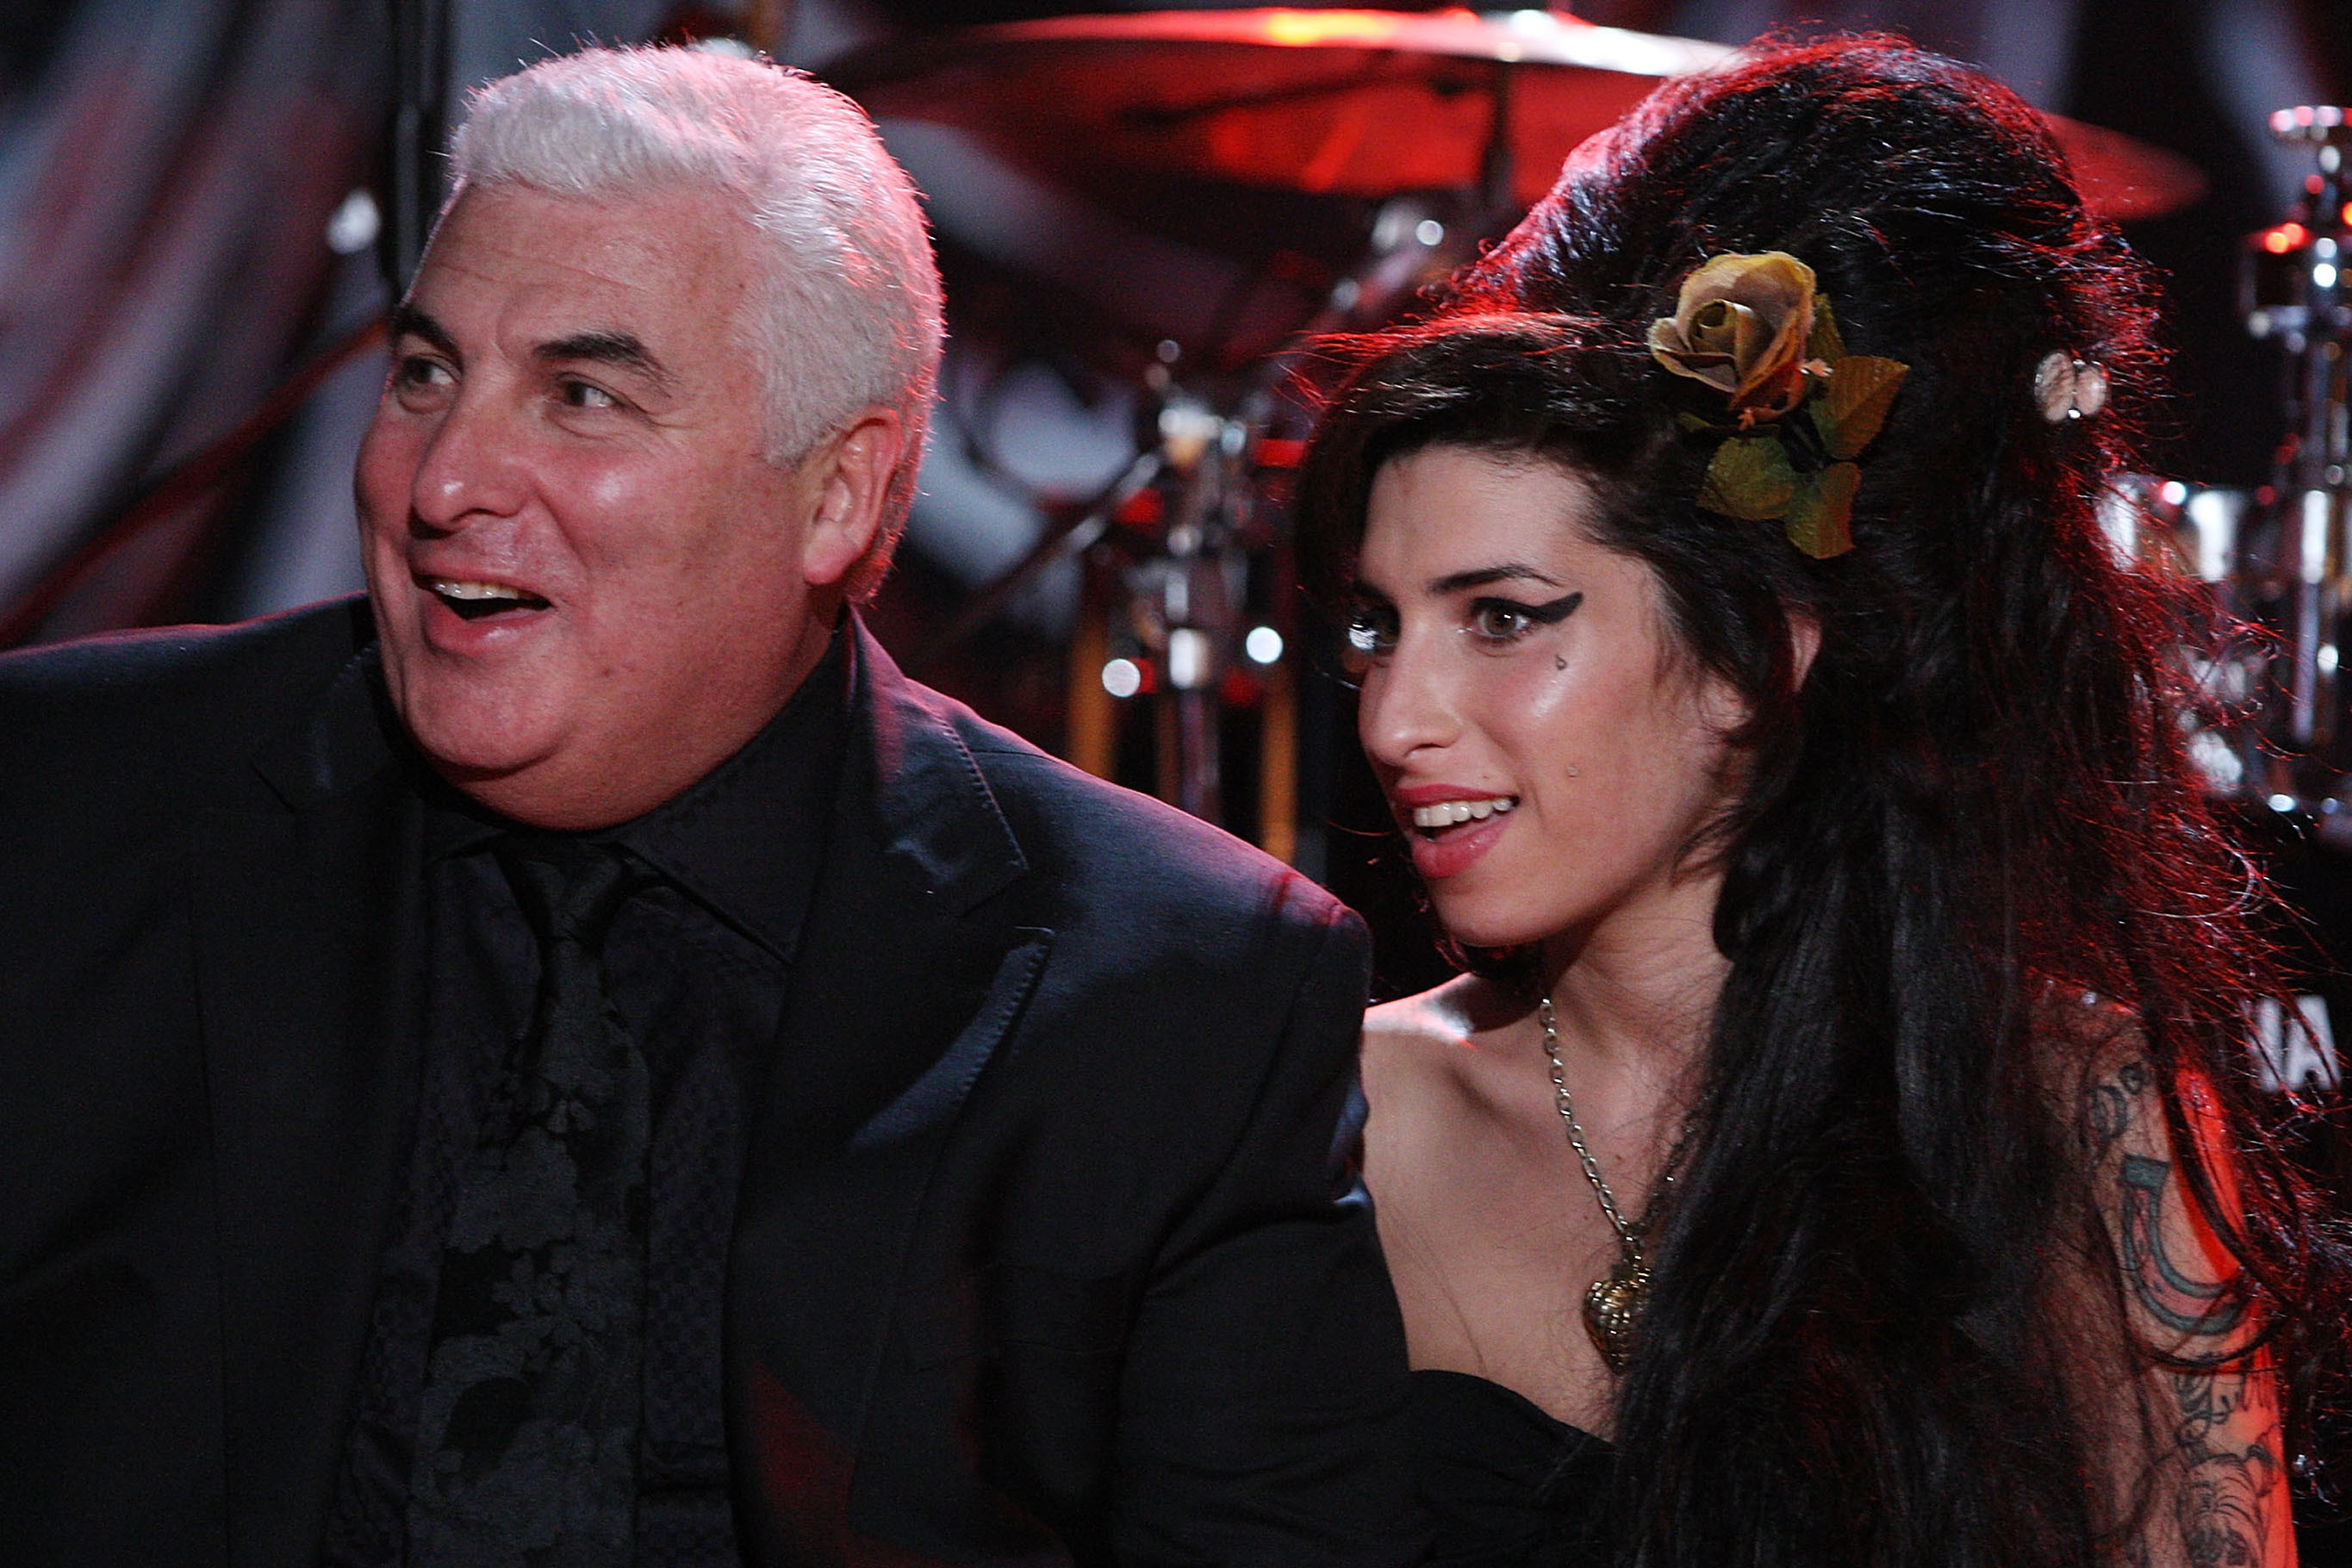 Amy Winehouse's father continues to advocate for the hologram tour, much to fans' dismay. (Image via Page Six)